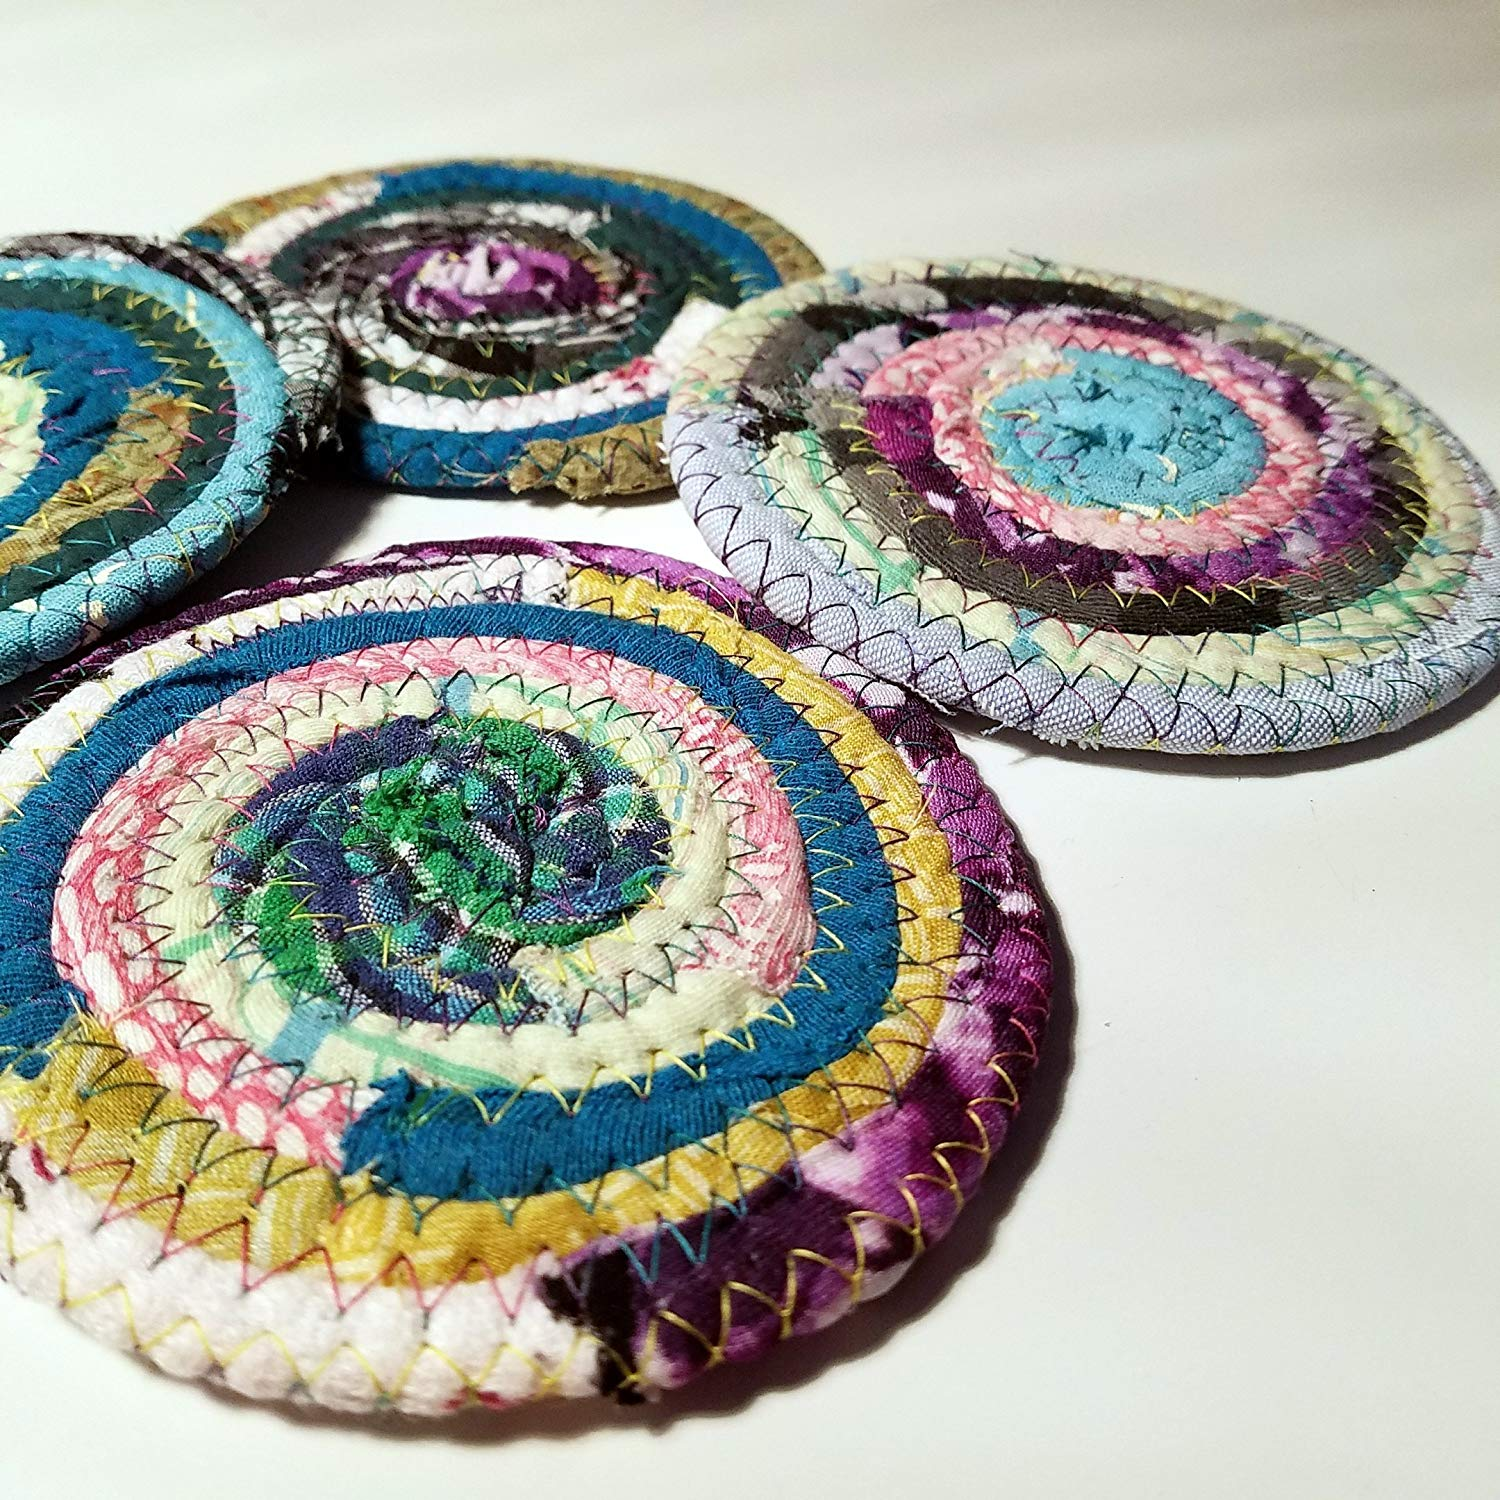 Handmade Fabric Coasters Multicolor Made to Order, Colors Will Vary, Upcycled Set of 4 Cloth Bohemian Drinkware Coasters